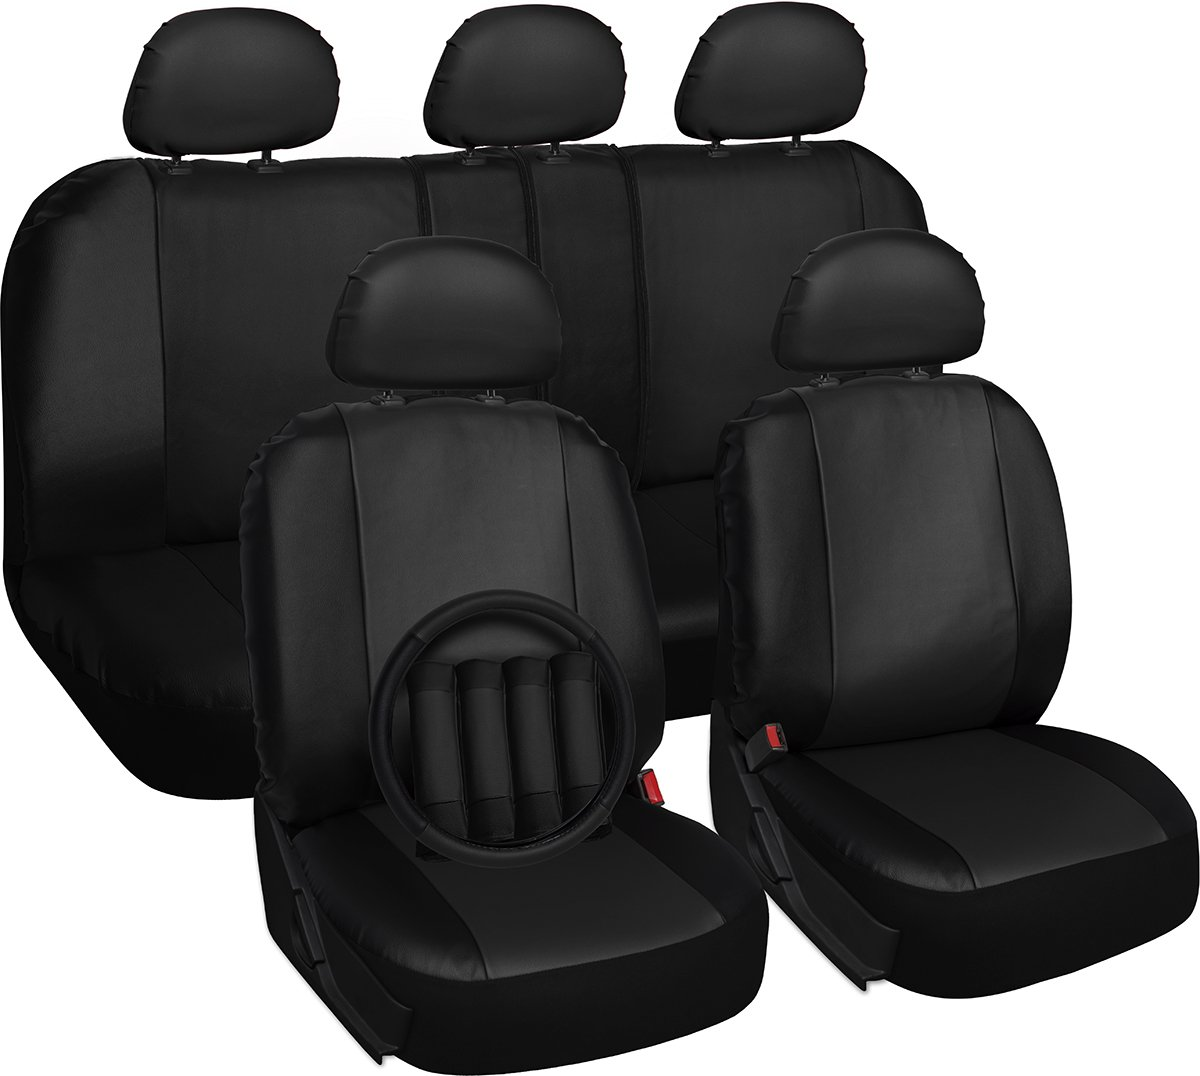 Bell Automotive 22-1-55368-8 Black Leather Sport Seat Cover